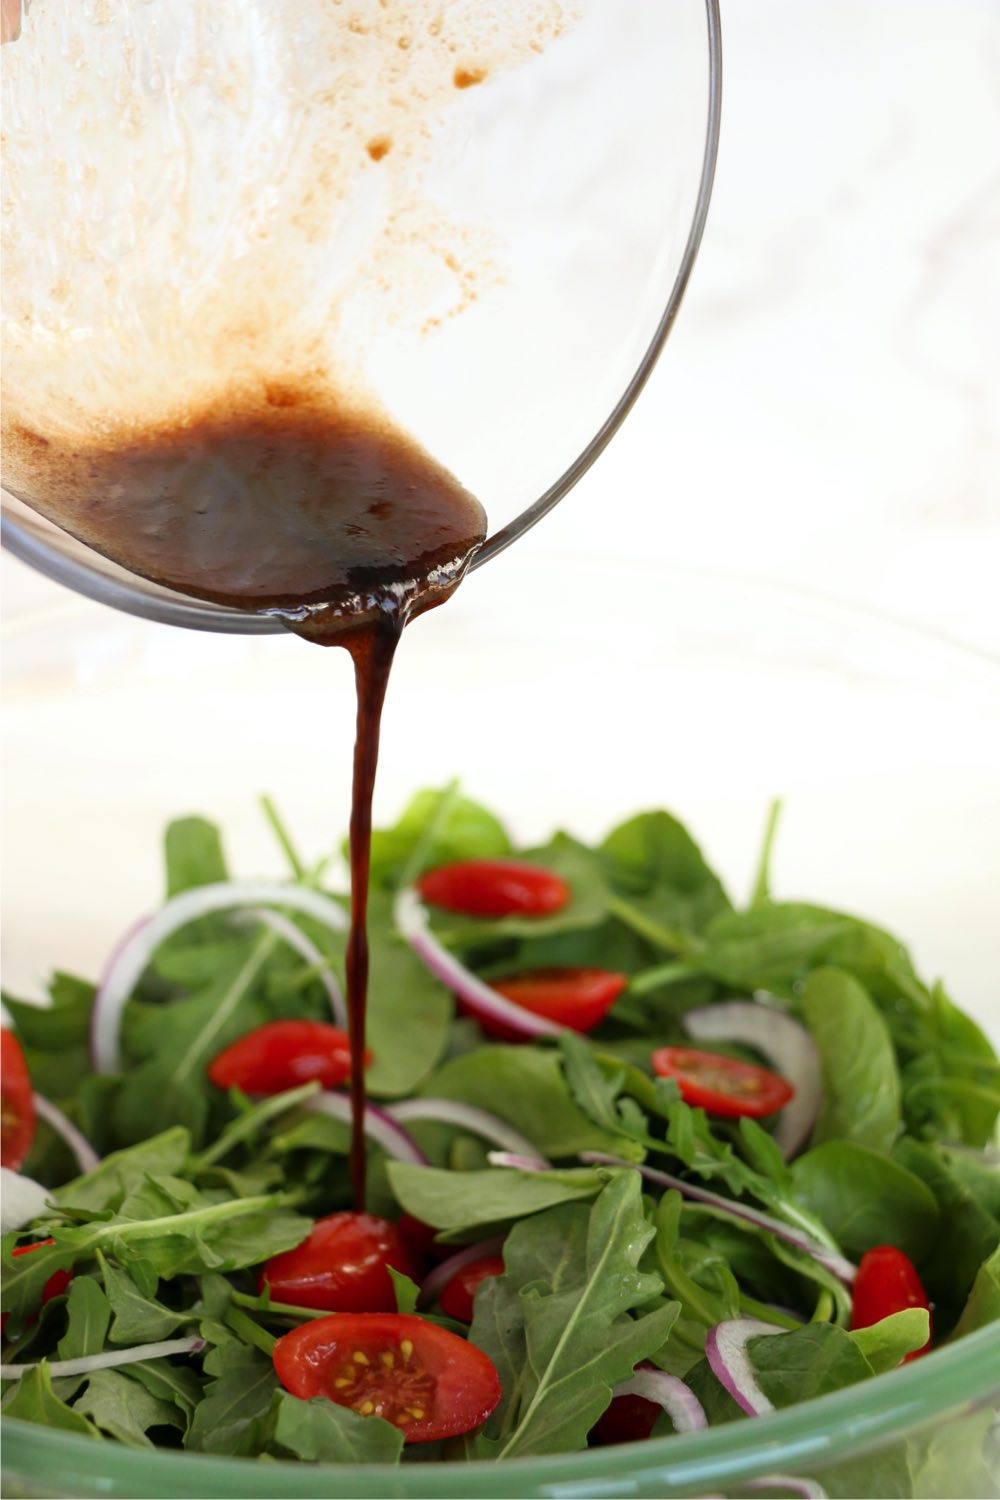 drizzling balsamic dressing on salad